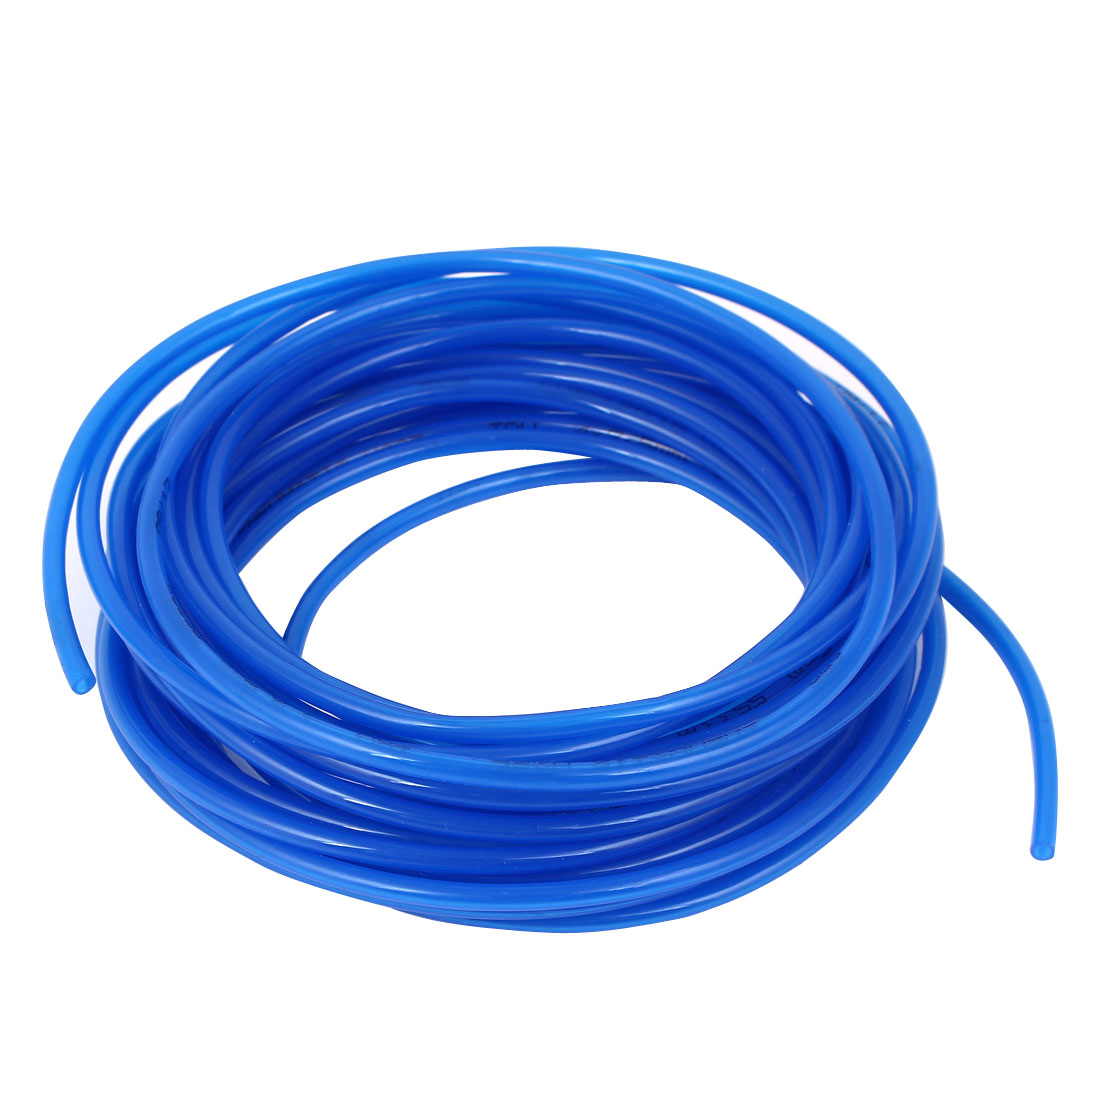 7.5 Meter Long 4mm x 2.5mm Blue Polyurethane Flexible Air Tube PU Tubing Pneumatic Pipe Hose